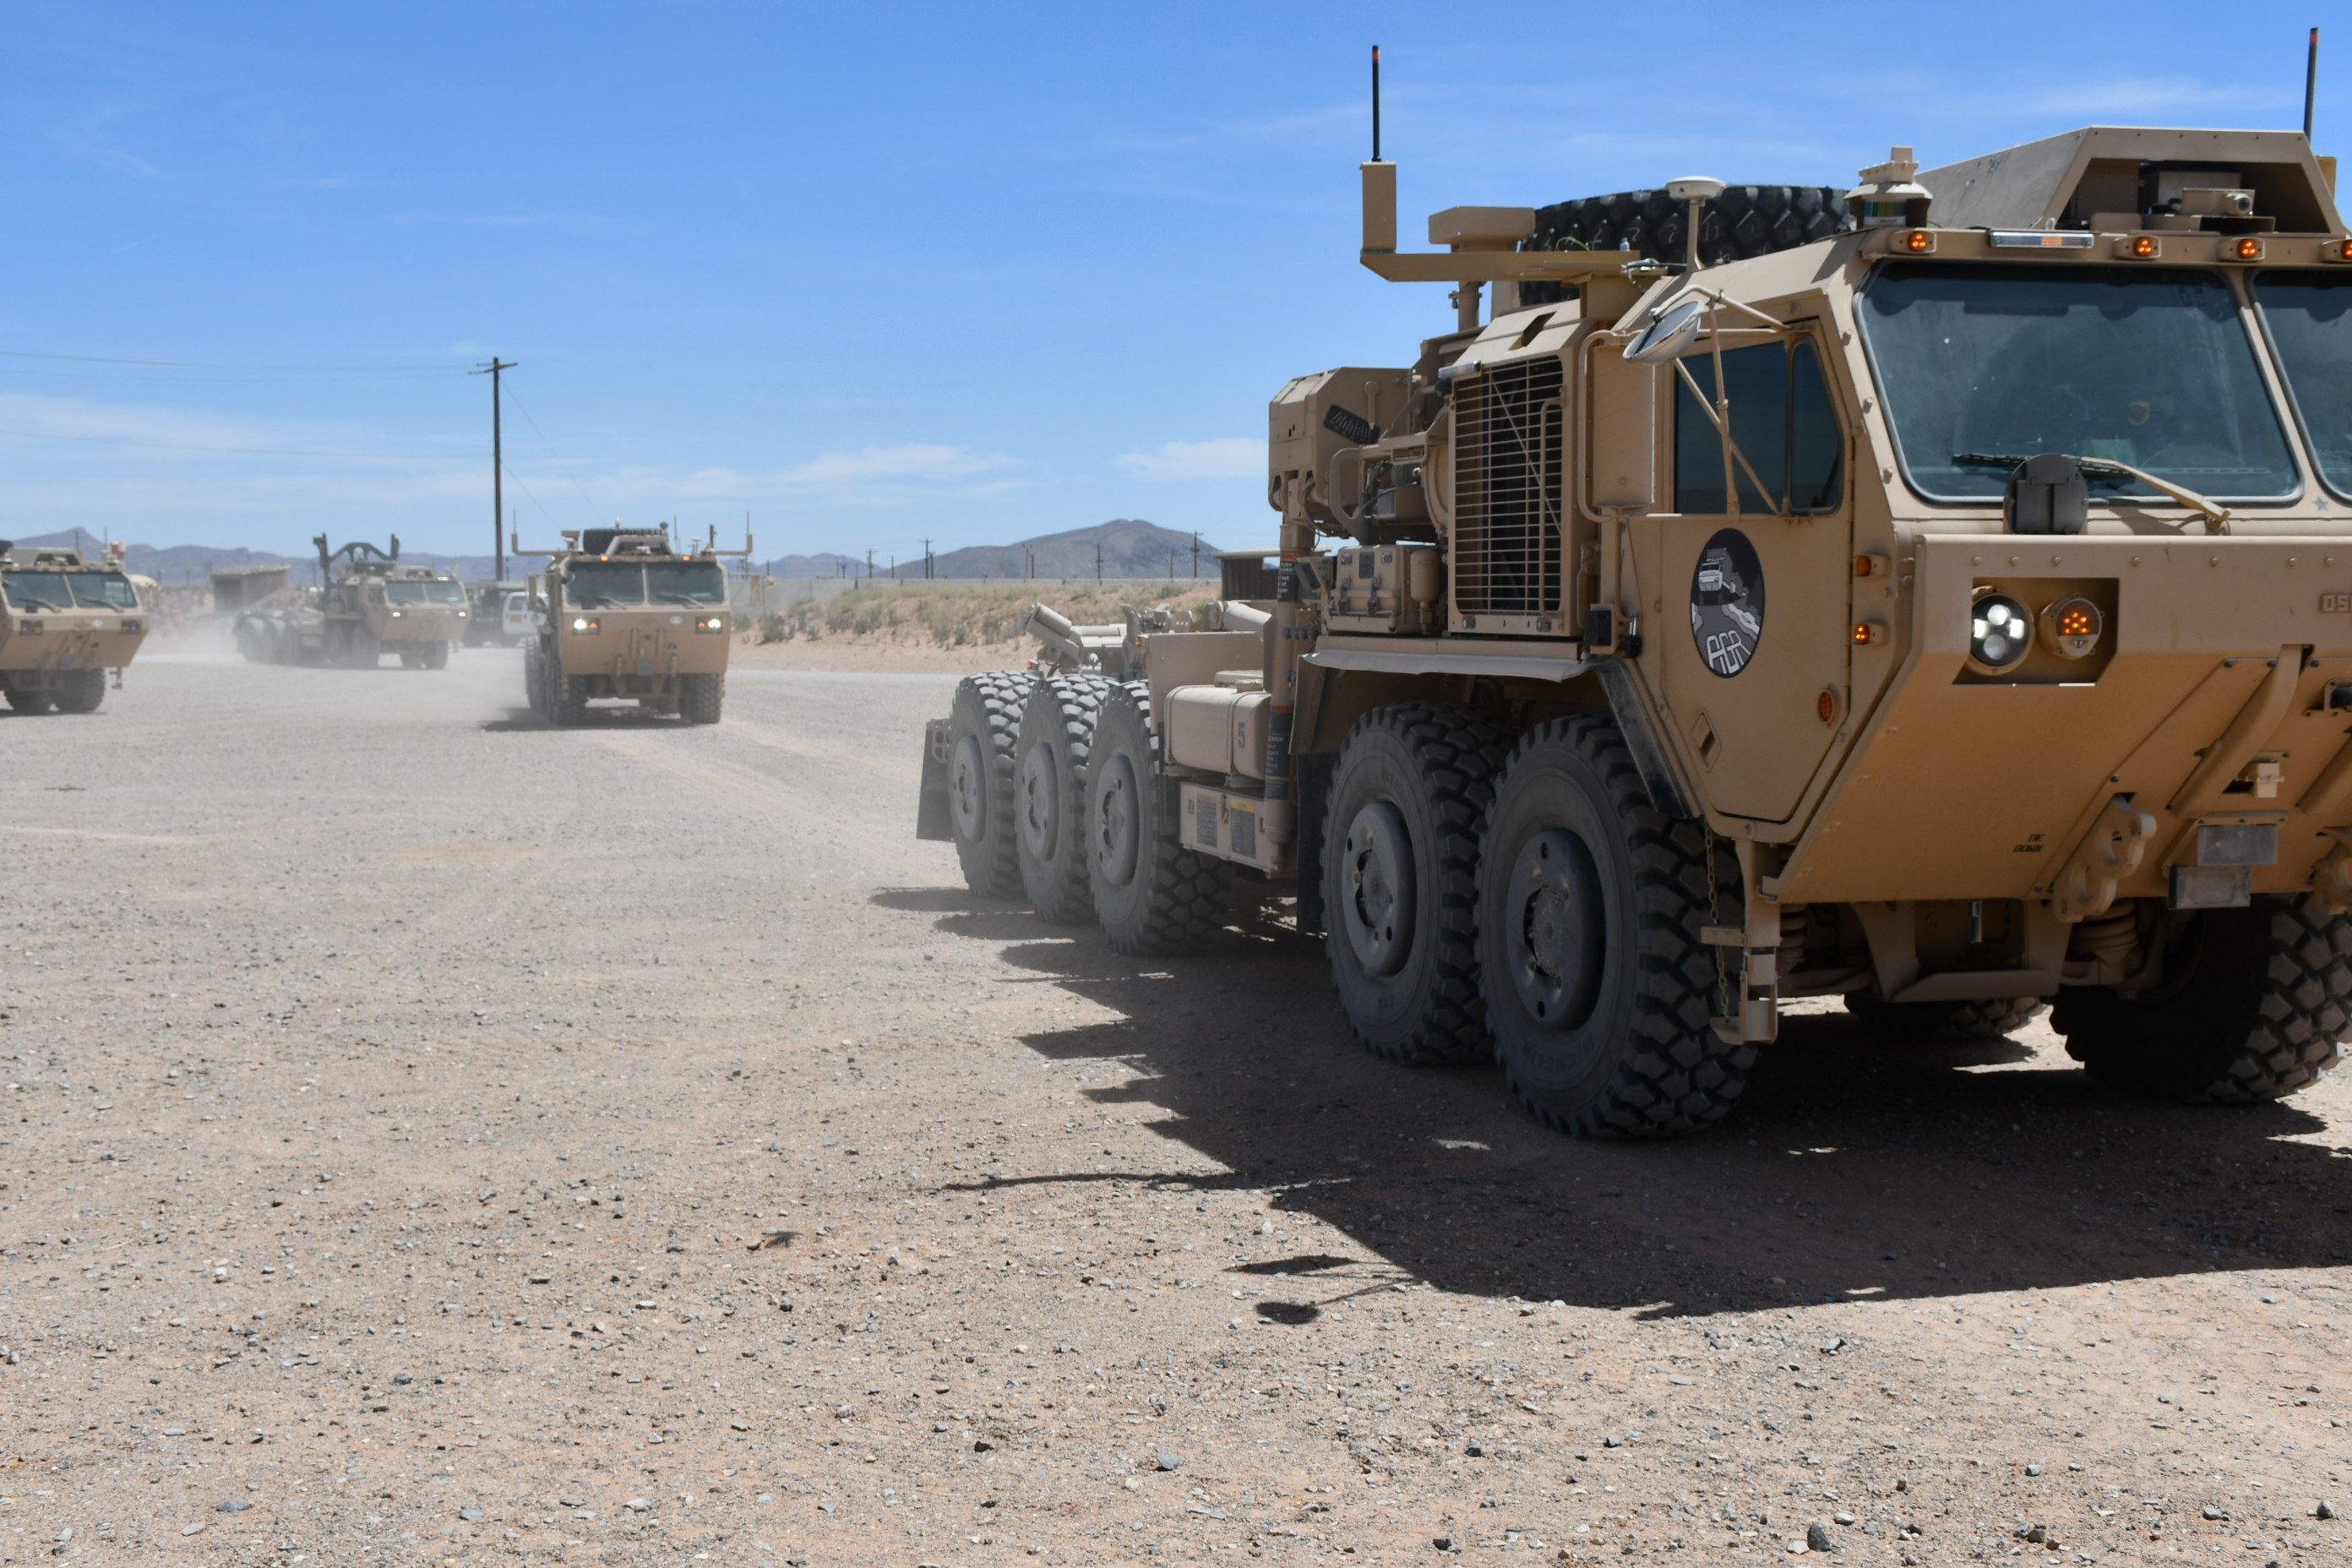 U.S. Army Develops a Robot Brain for Controlling Armored Vehicles